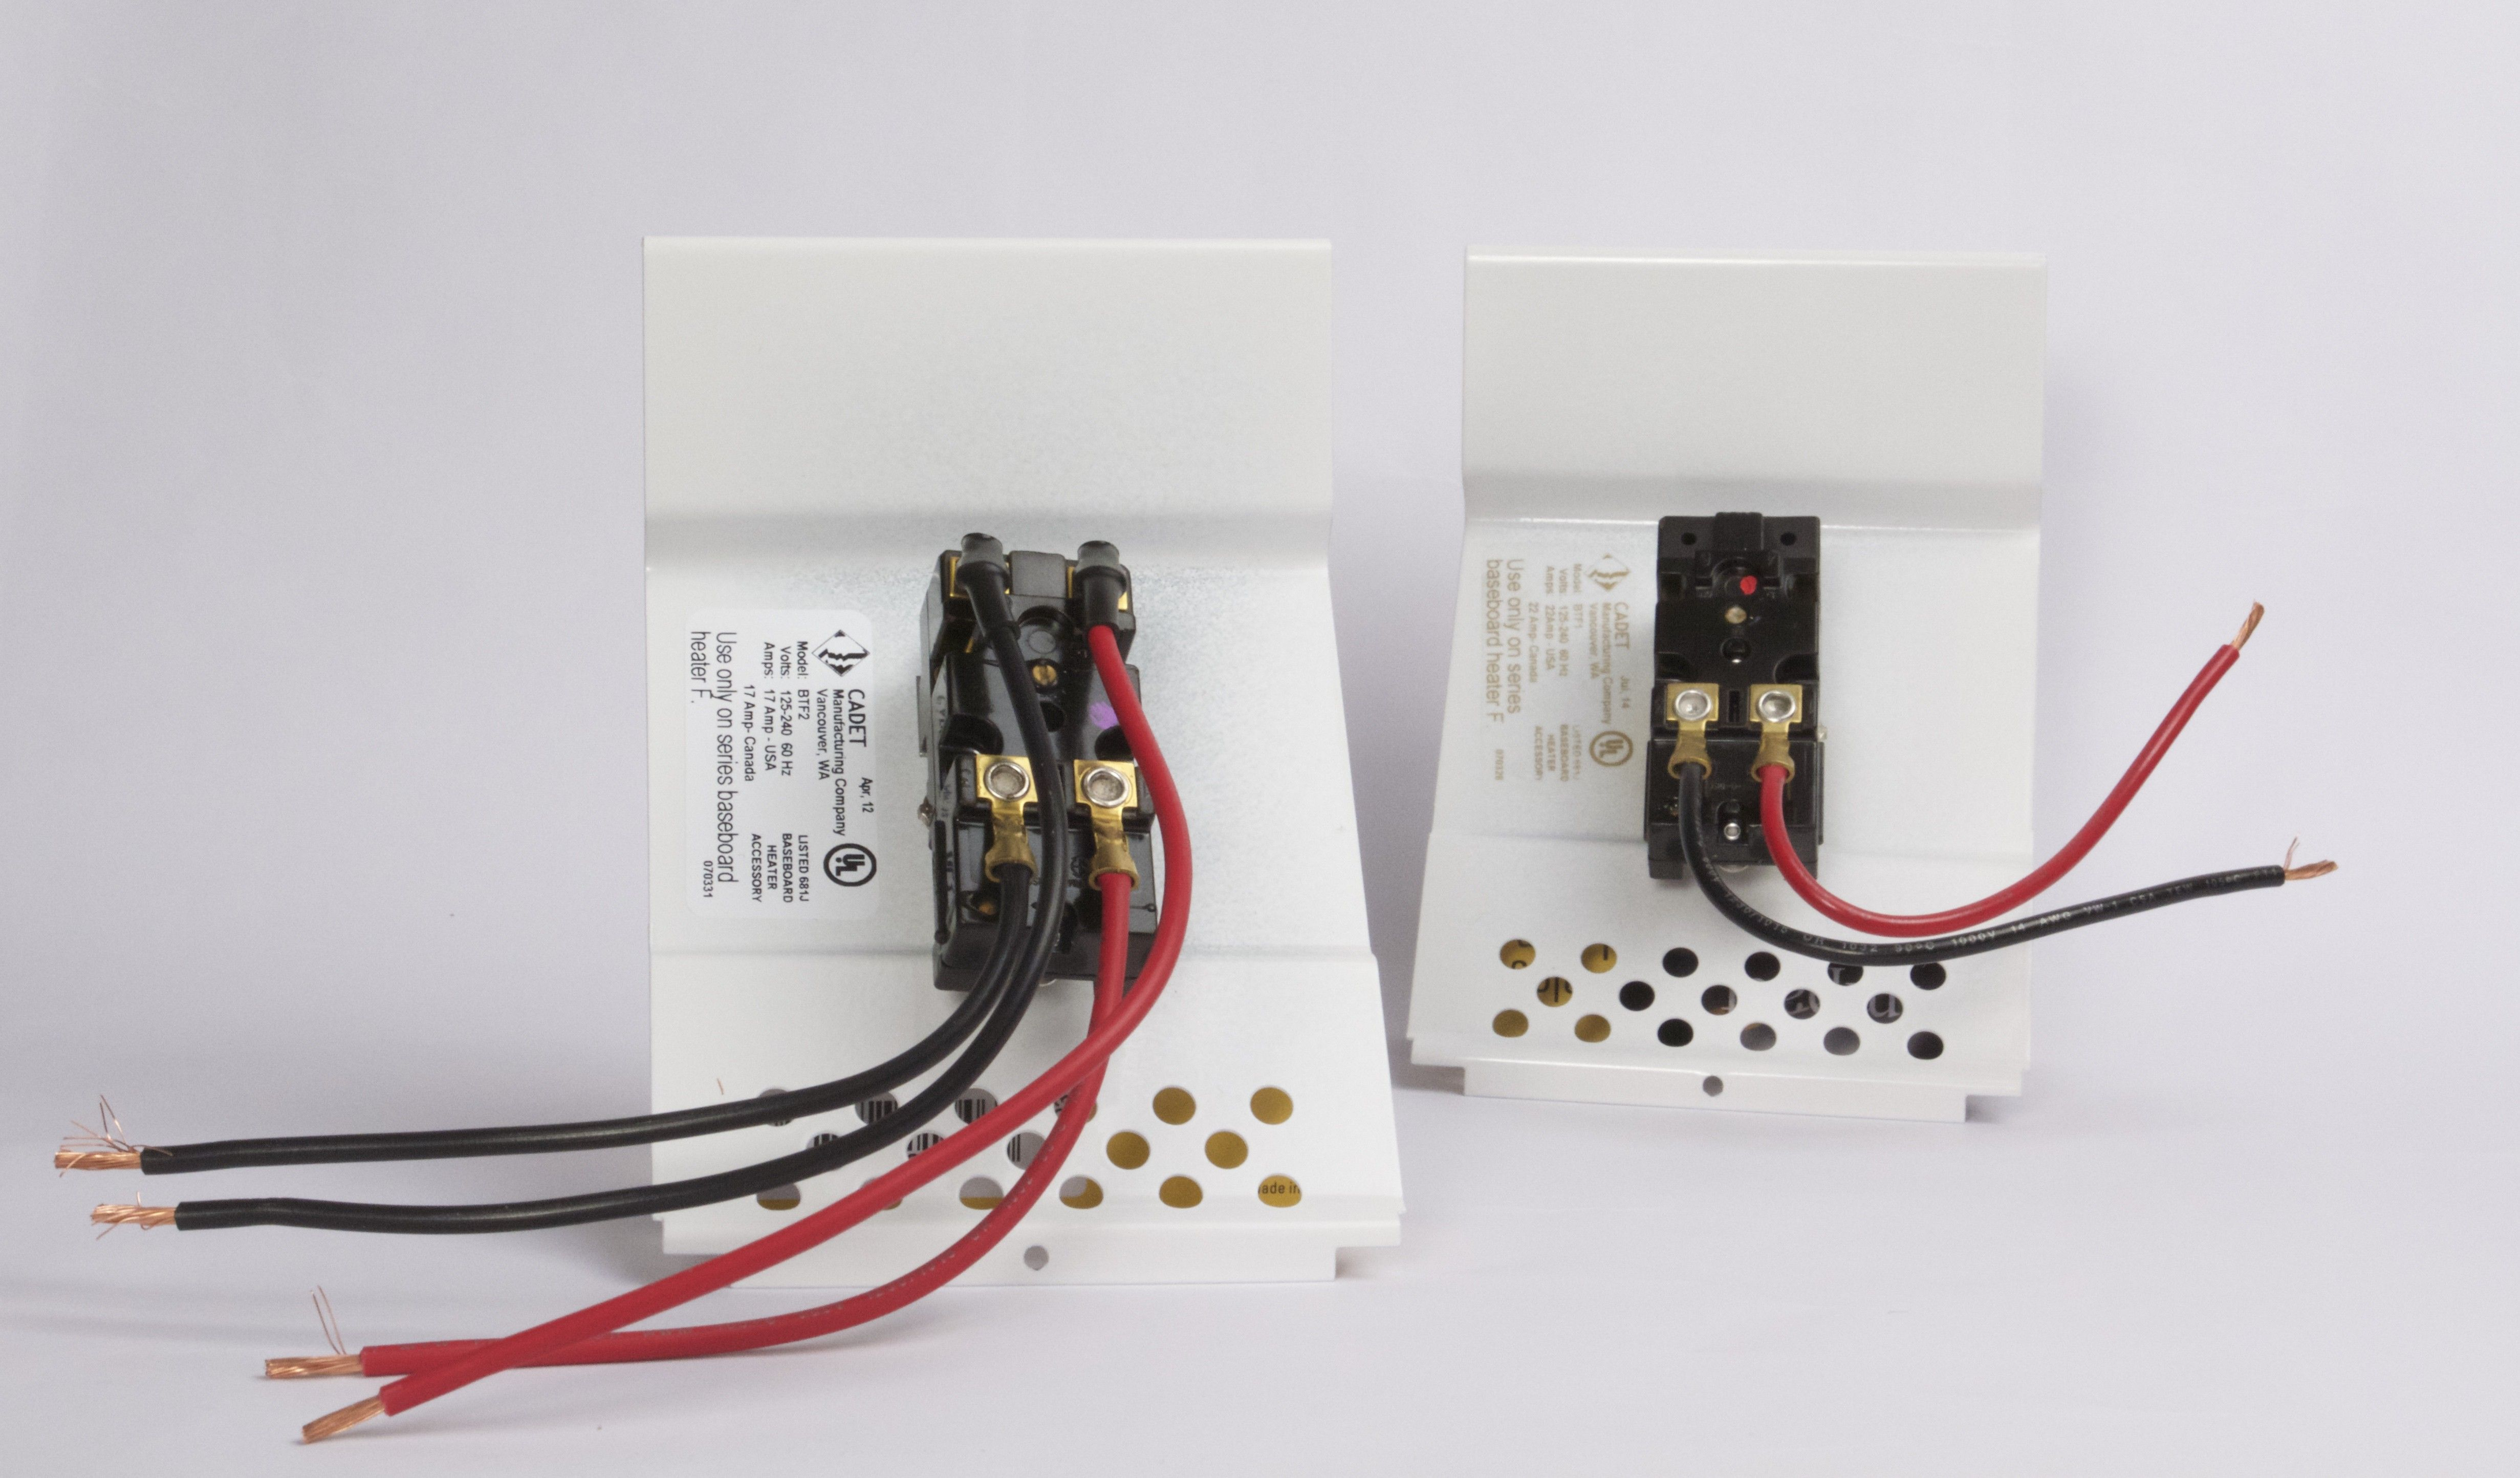 New Wiring Diagram for thermostat On Baseboard Heater (con